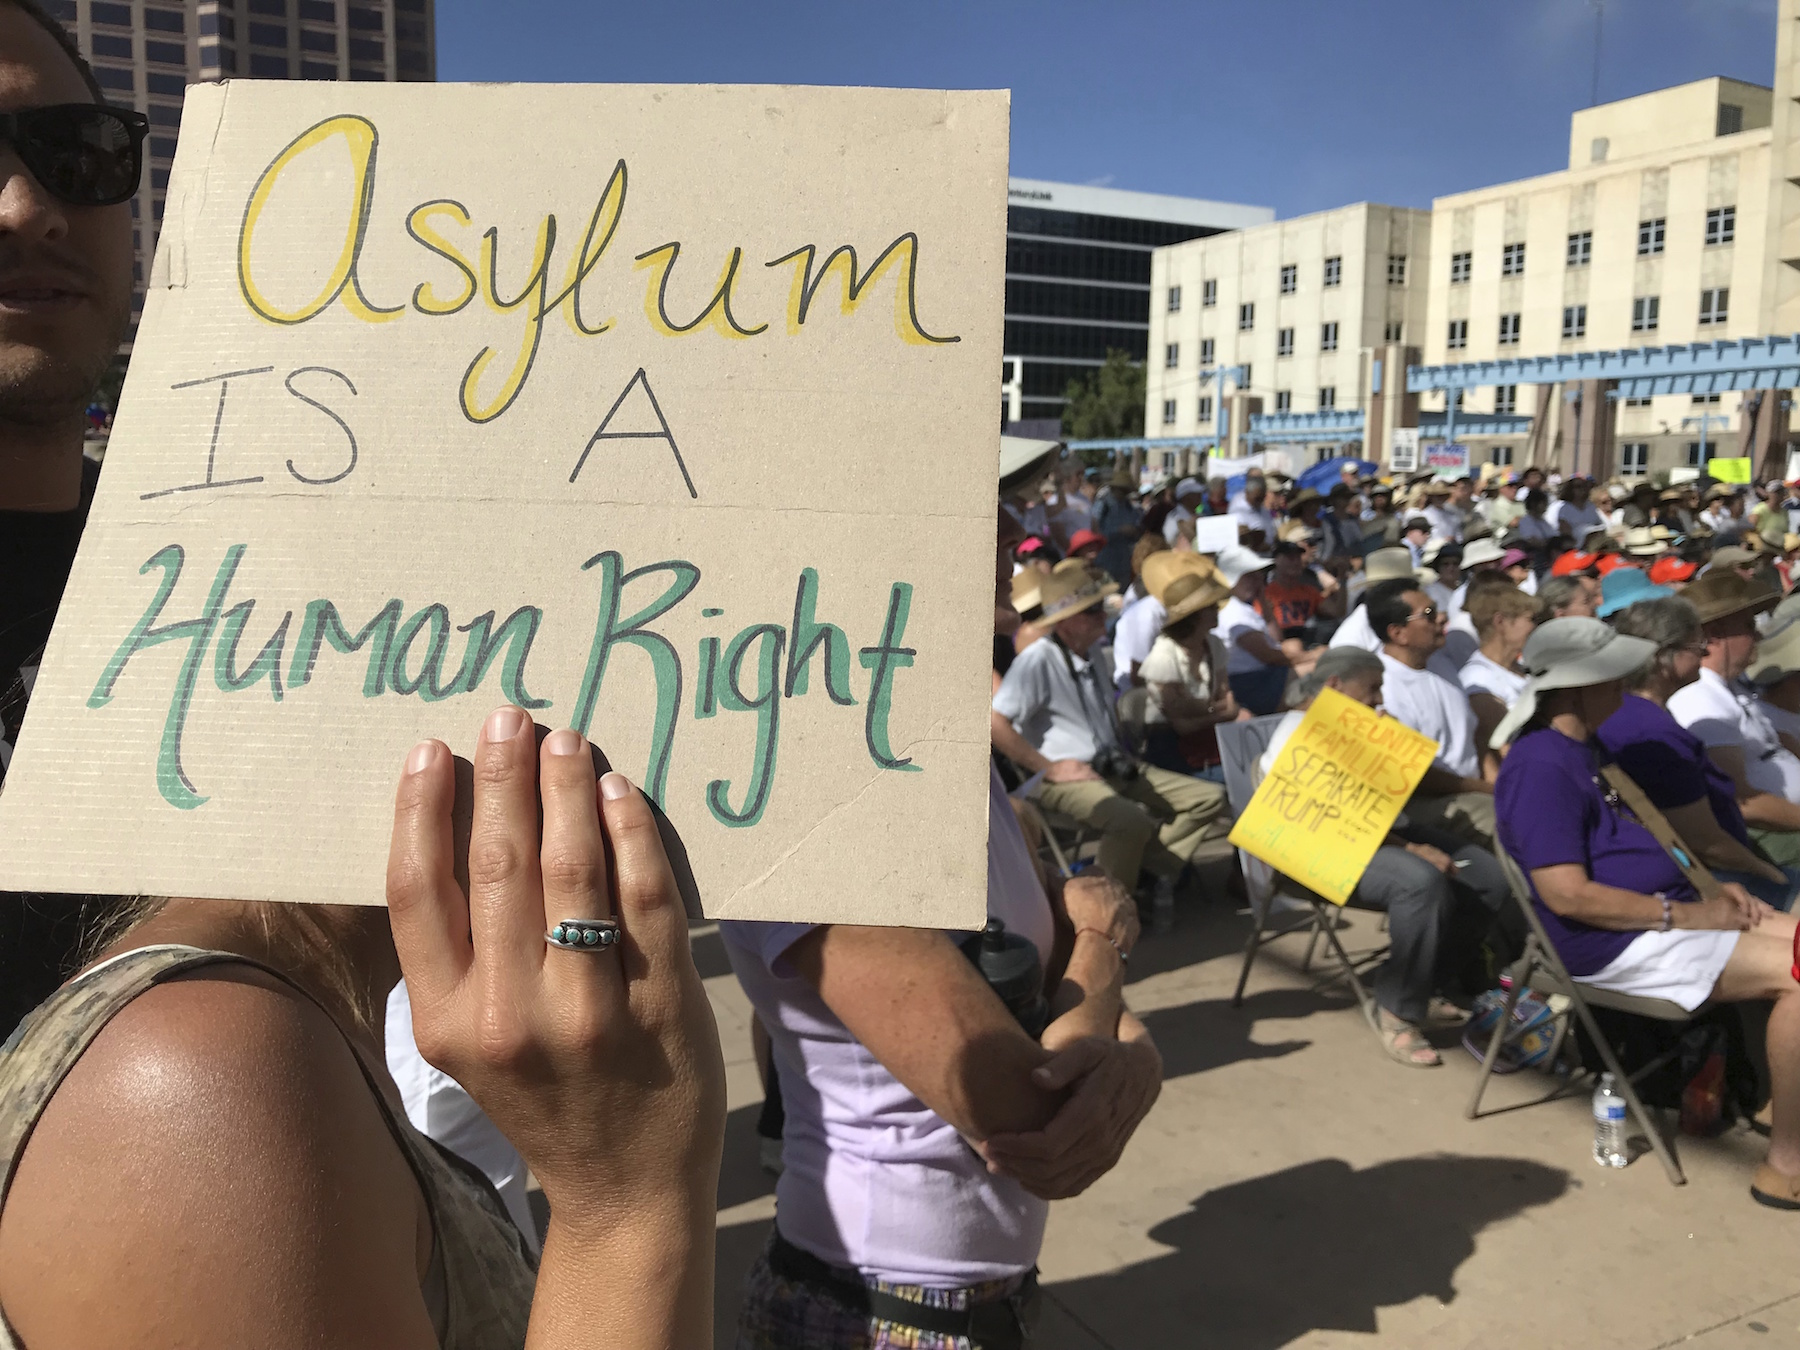 <div class='meta'><div class='origin-logo' data-origin='AP'></div><span class='caption-text' data-credit='AP Photo/Susan Montoya Bryan'>A protester holds up a sign as thousands gather for a demonstration on Civic Plaza in Albuquerque, N.M., on Saturday, June 30, 2018.</span></div>